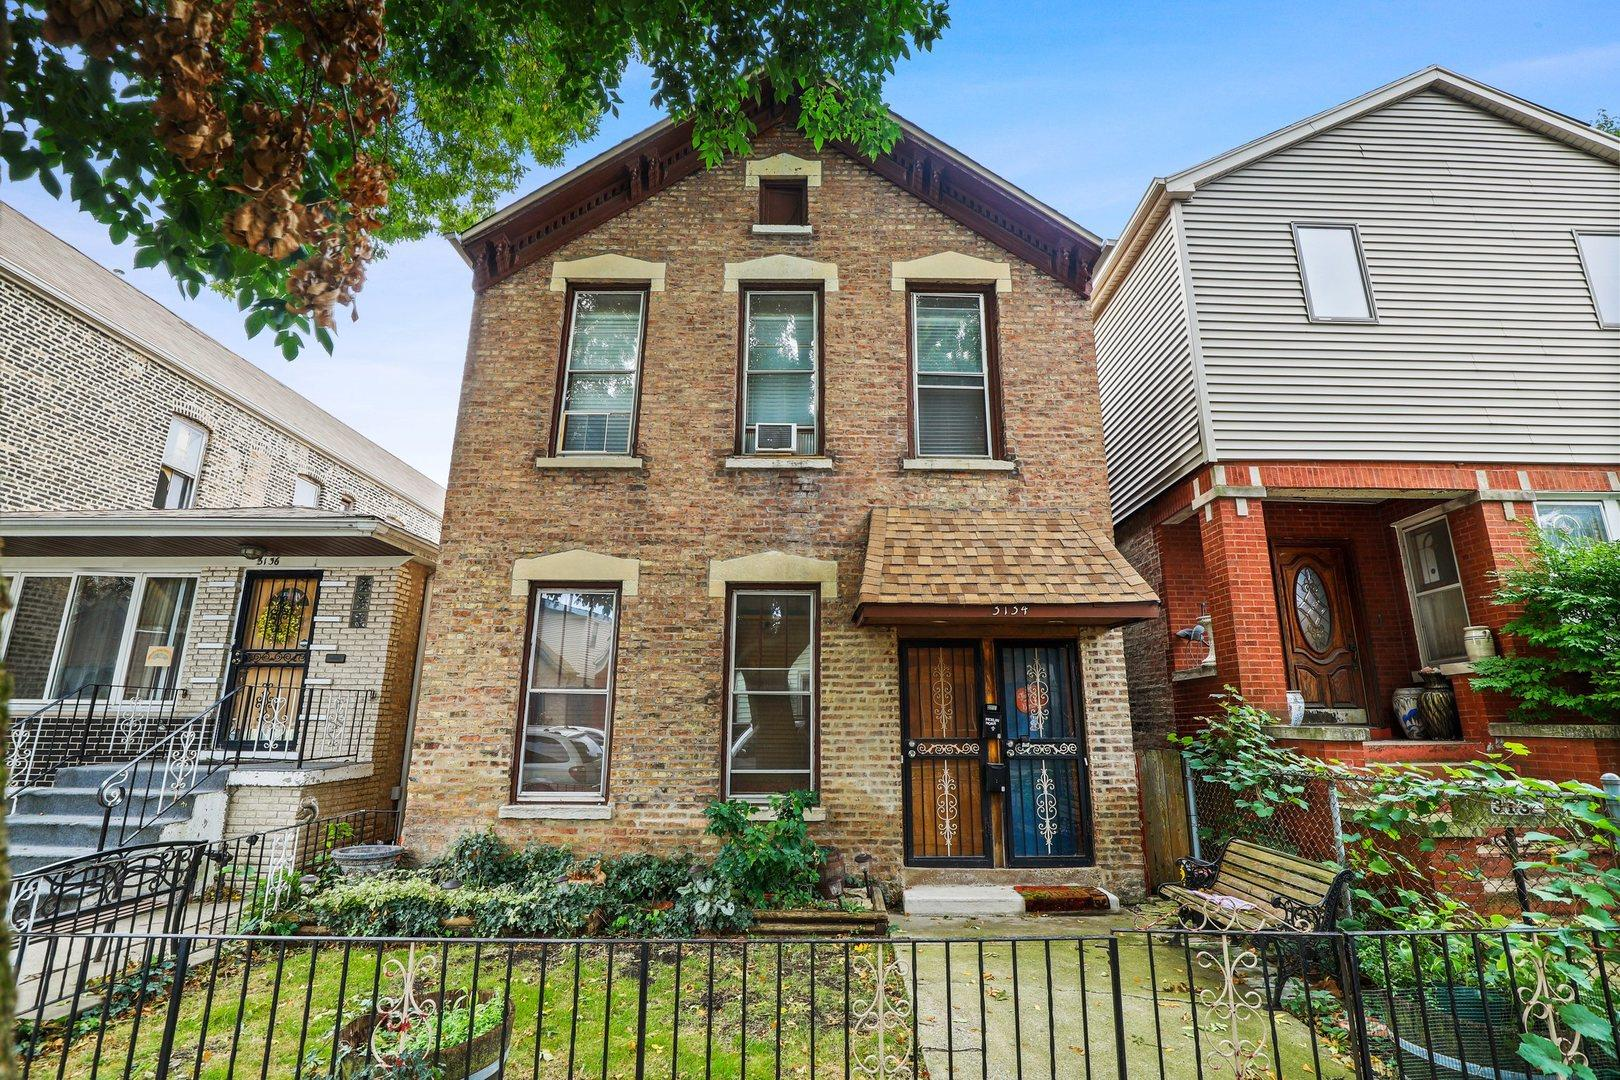 3134 S May Street, Chicago, IL 60608 - #: 10879741